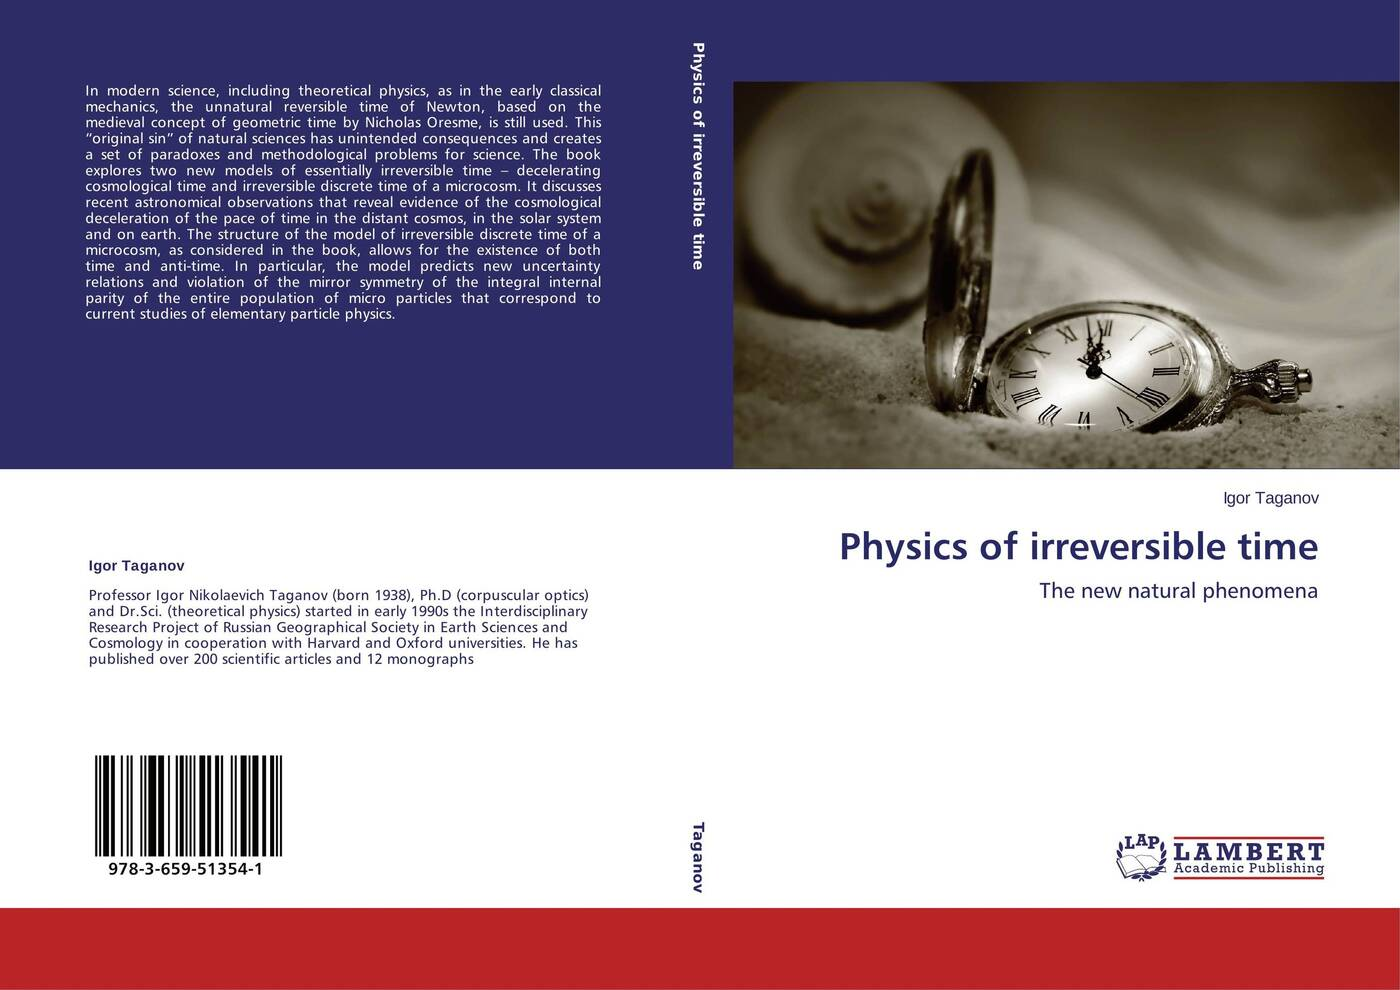 Igor Taganov Physics of irreversible time felix j palma the map of time and the turn of the screw